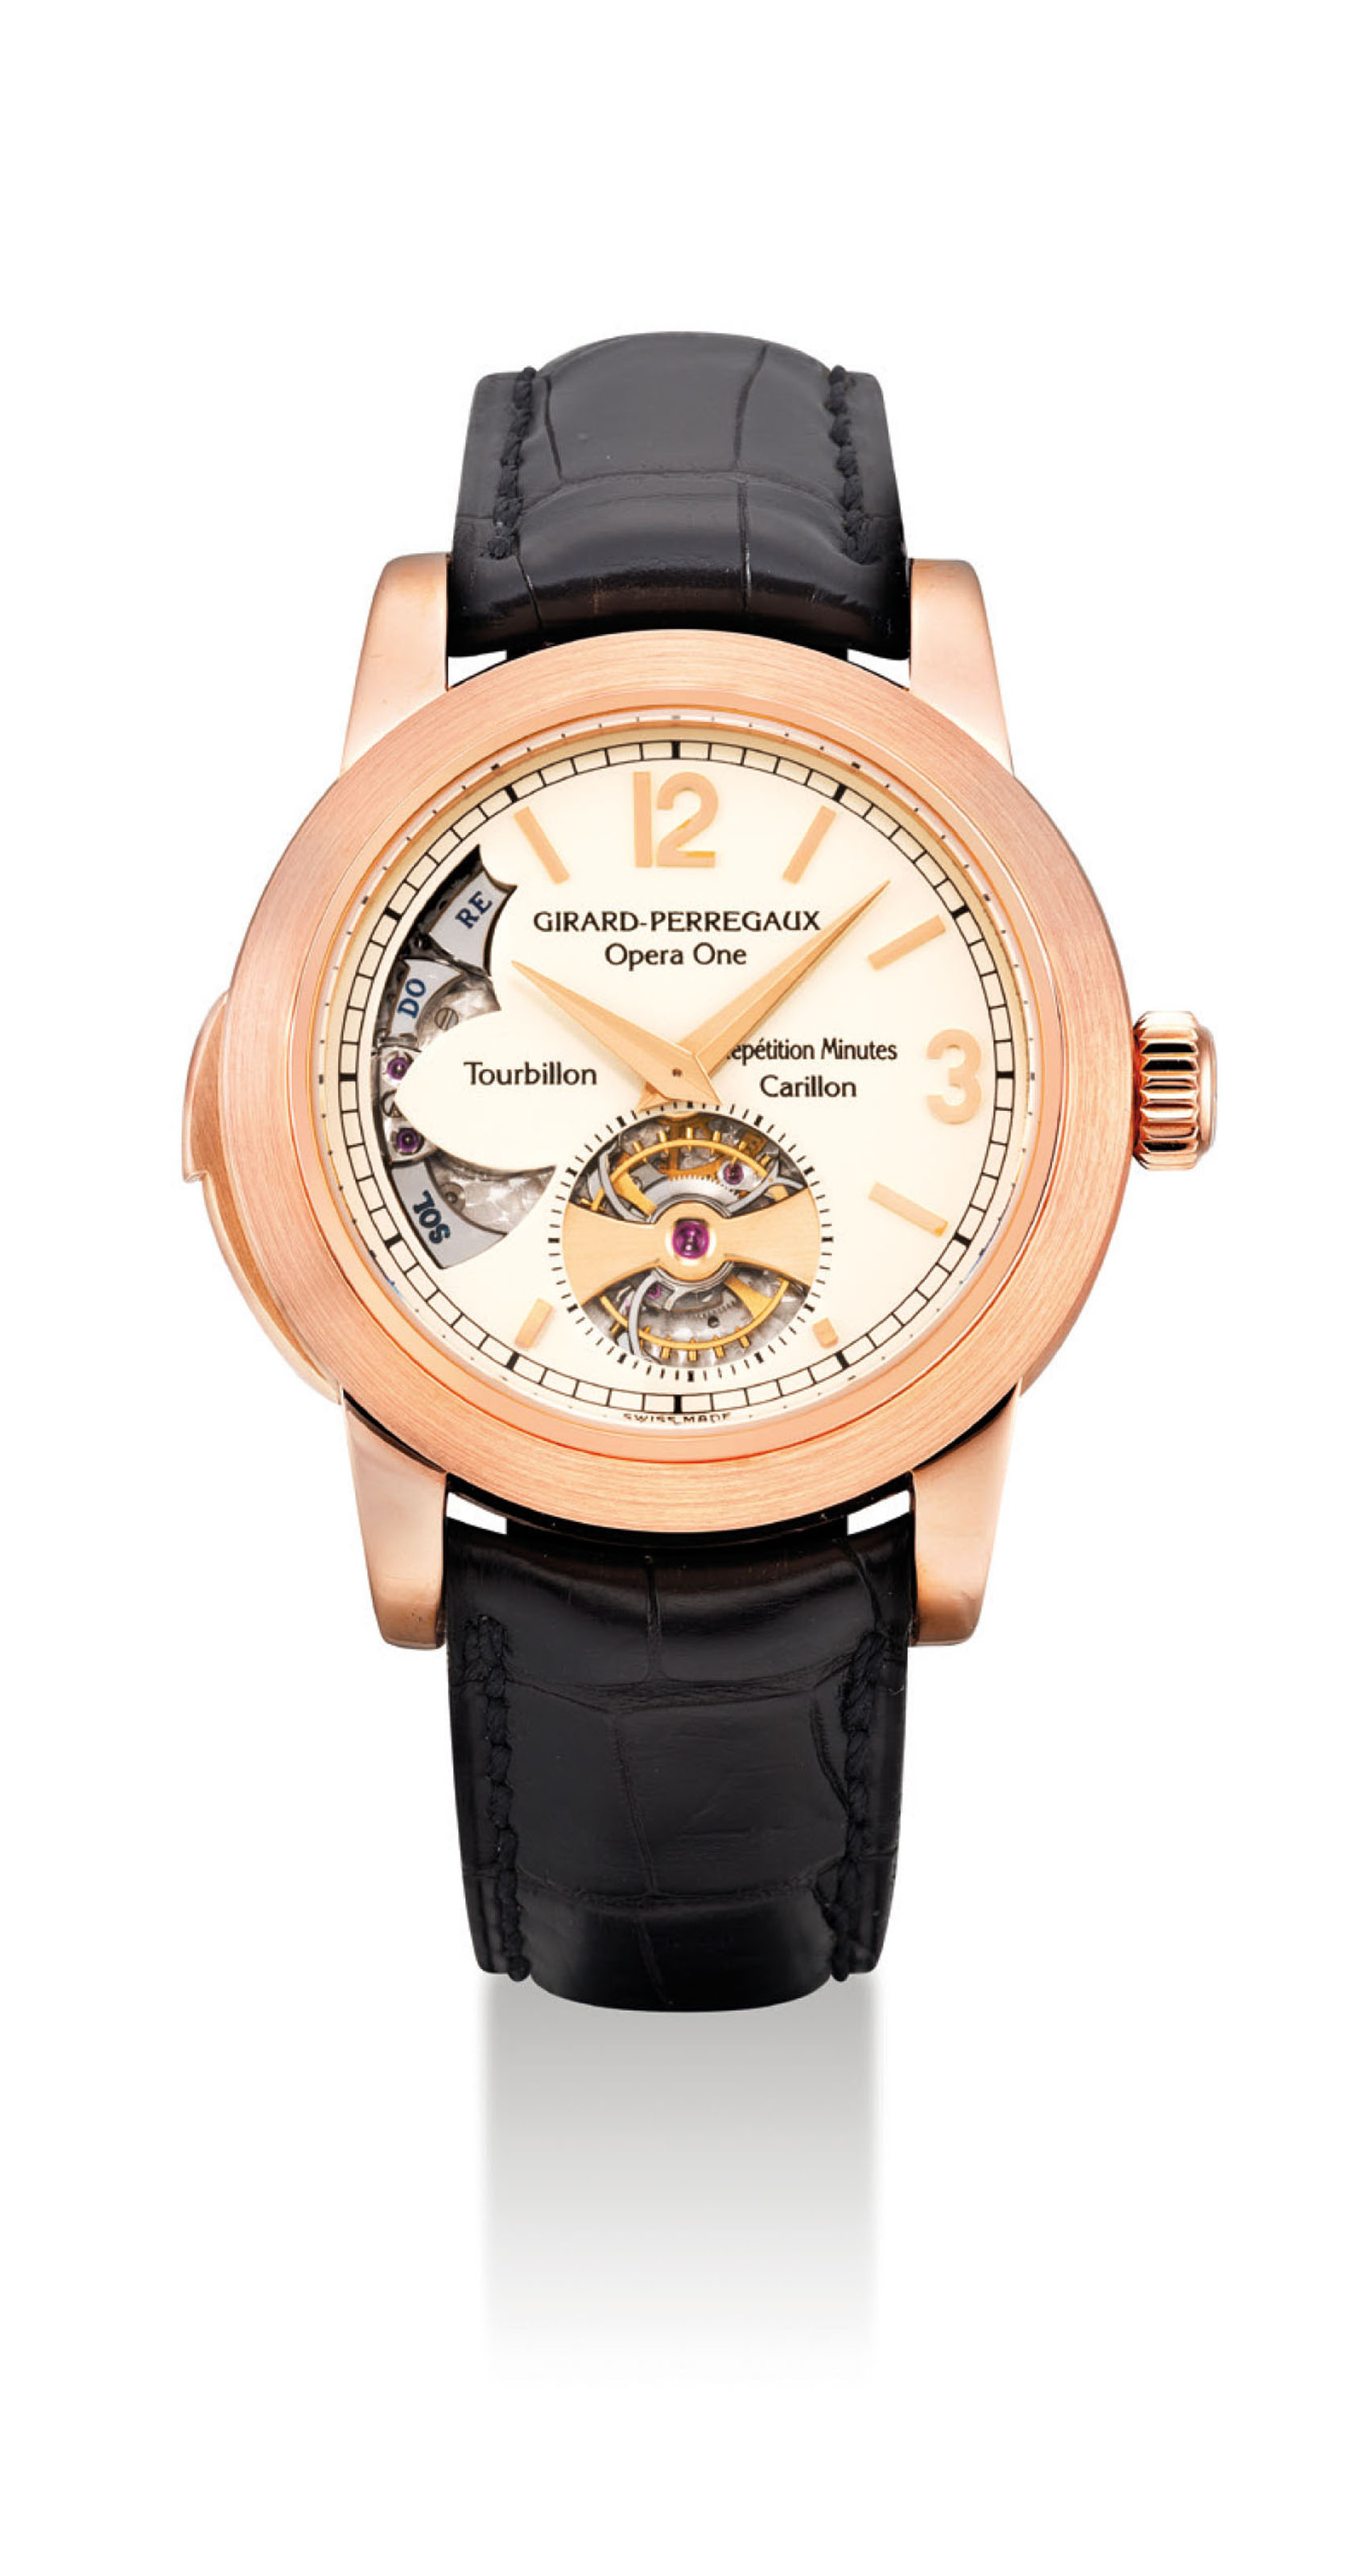 GIRARD-PERREGAUX. AN IMPORTANT AND VERY FINE 18K PINK GOLD MINUTE REPEATING TOURBILLON WRISTWATCH WITH WESTMINSTER CARILLON CHIME